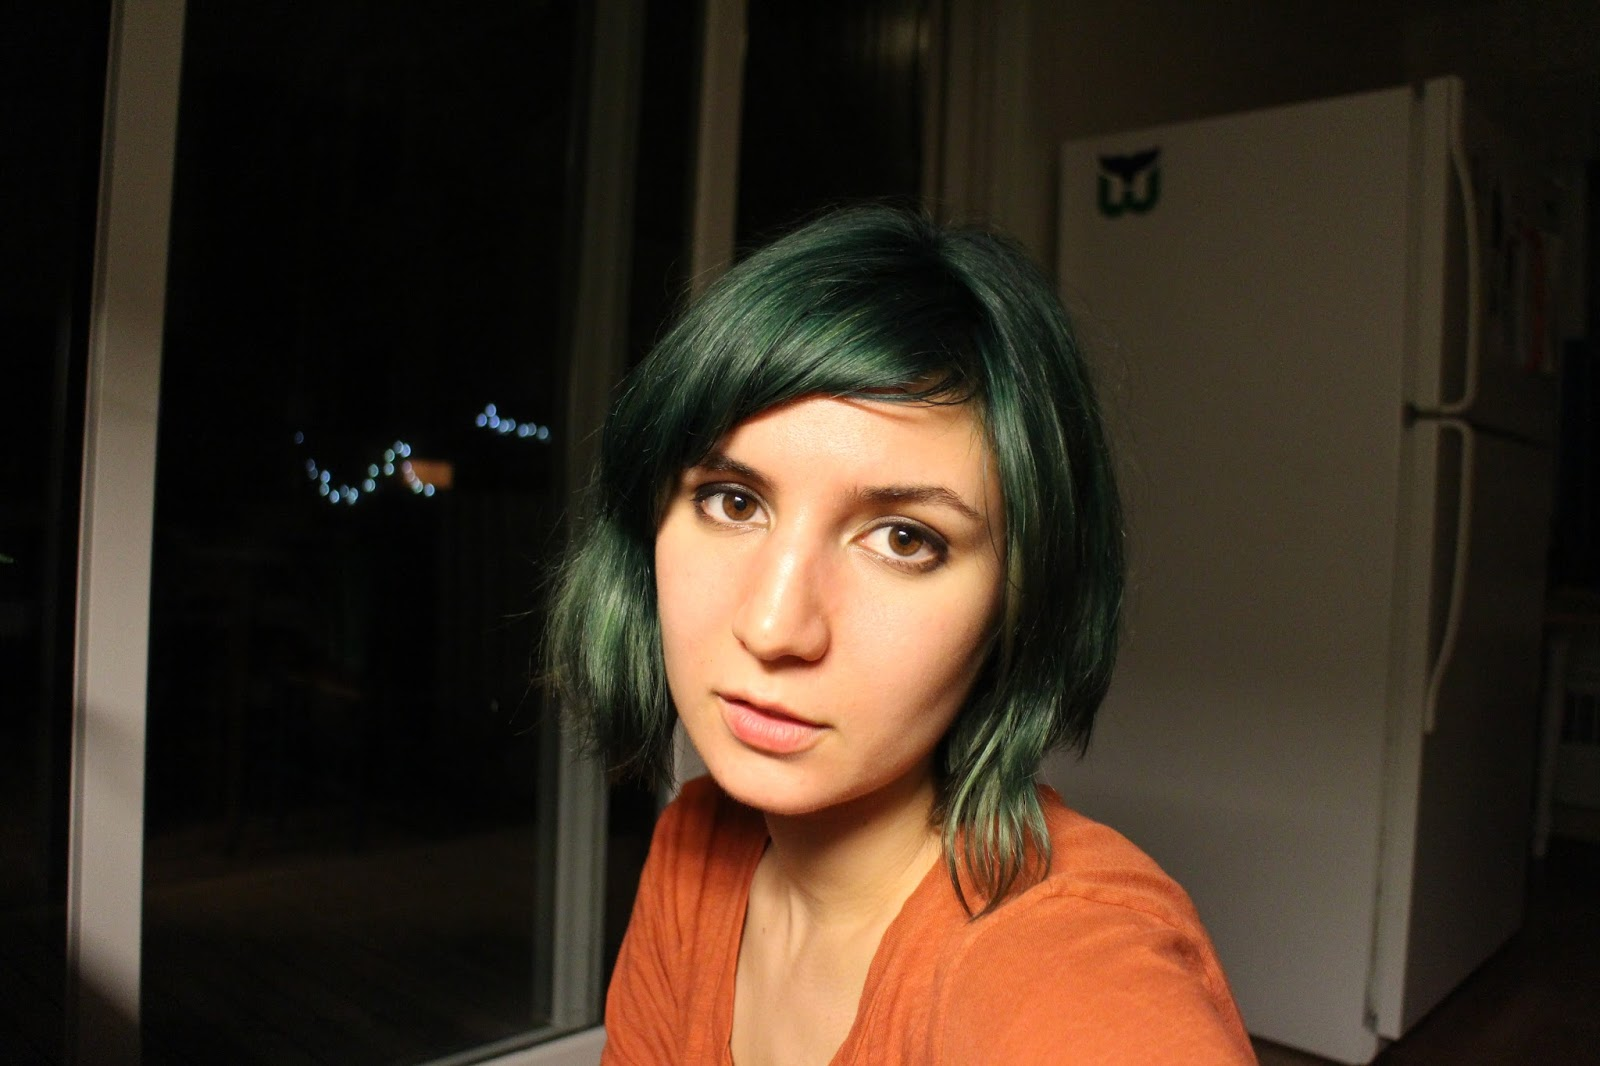 Aveda Pure tone color GREEN and BLUE, bleached and then dyed to a deep green-blue lustre. Ashy green hair, blue-green hair, silver-green hair, Aveda colored hair, jewel-tone hair, Emerald green, dusty green hair, deep green